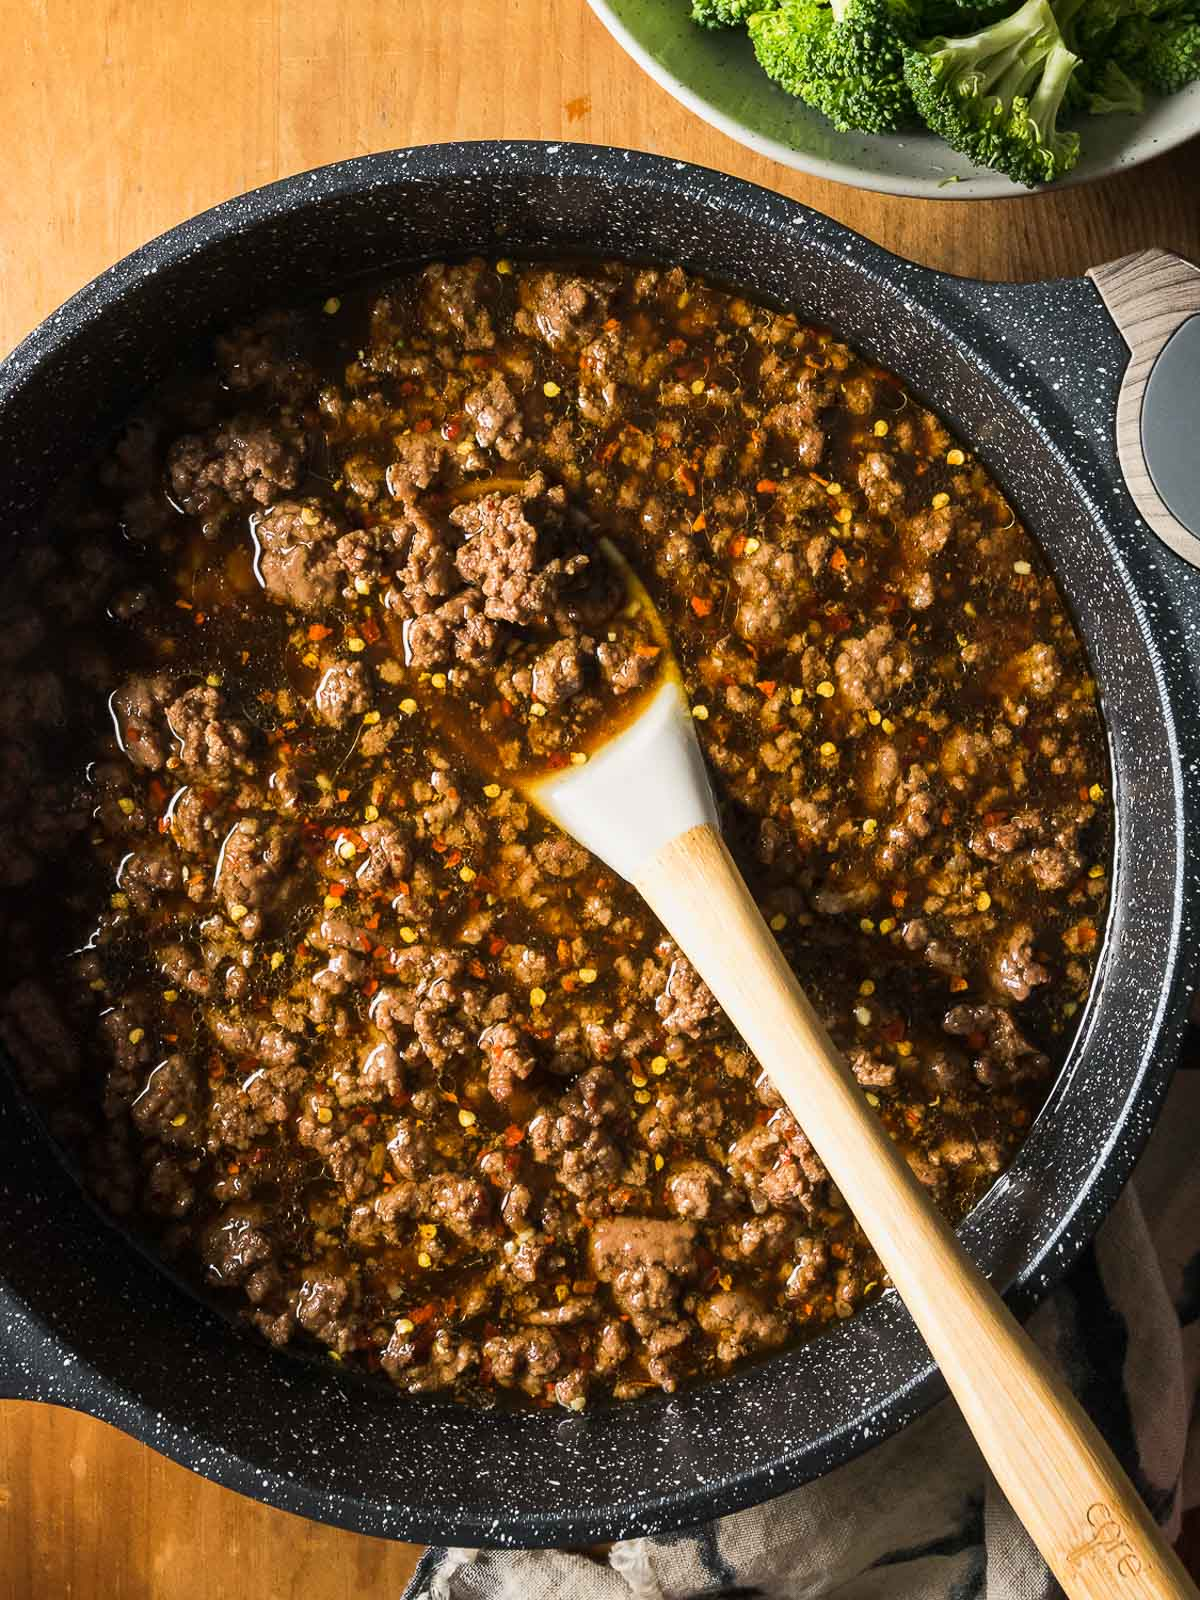 Making Ground Beef and Broccoli in a skillet.